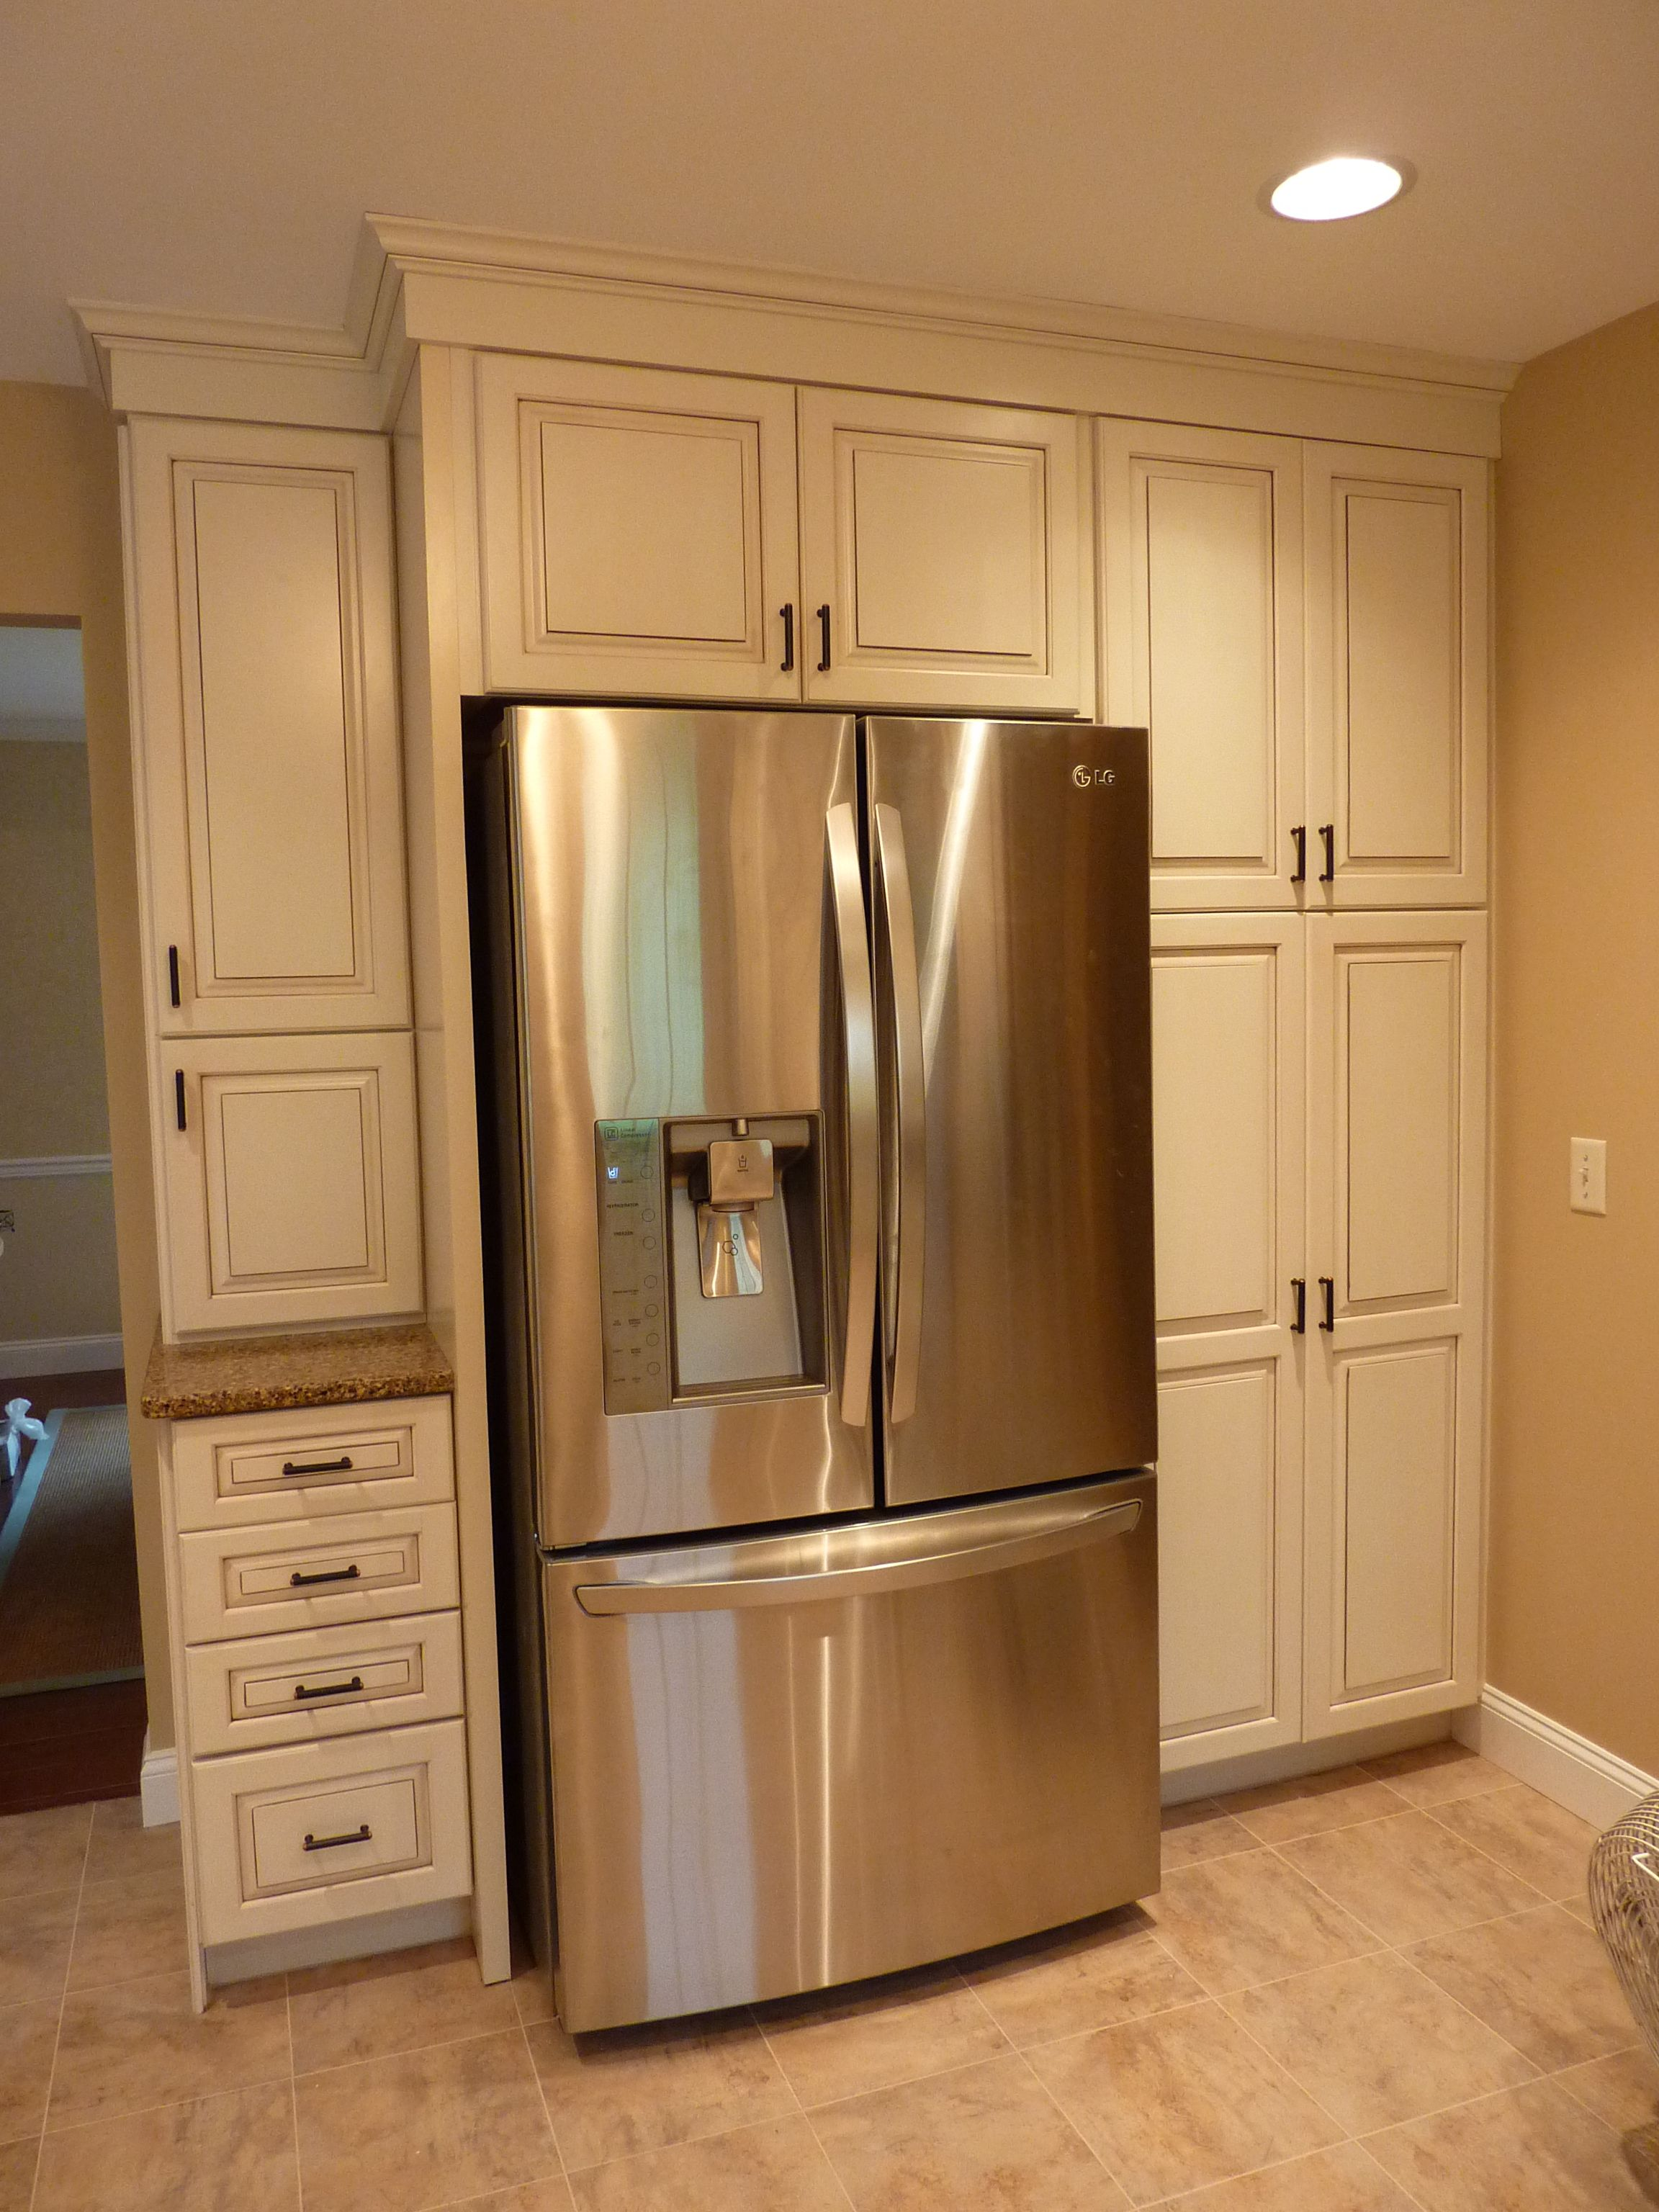 Kraftmaid offwhite cabinets with a glaze build in the for Kraftmaid kitchen cabinets